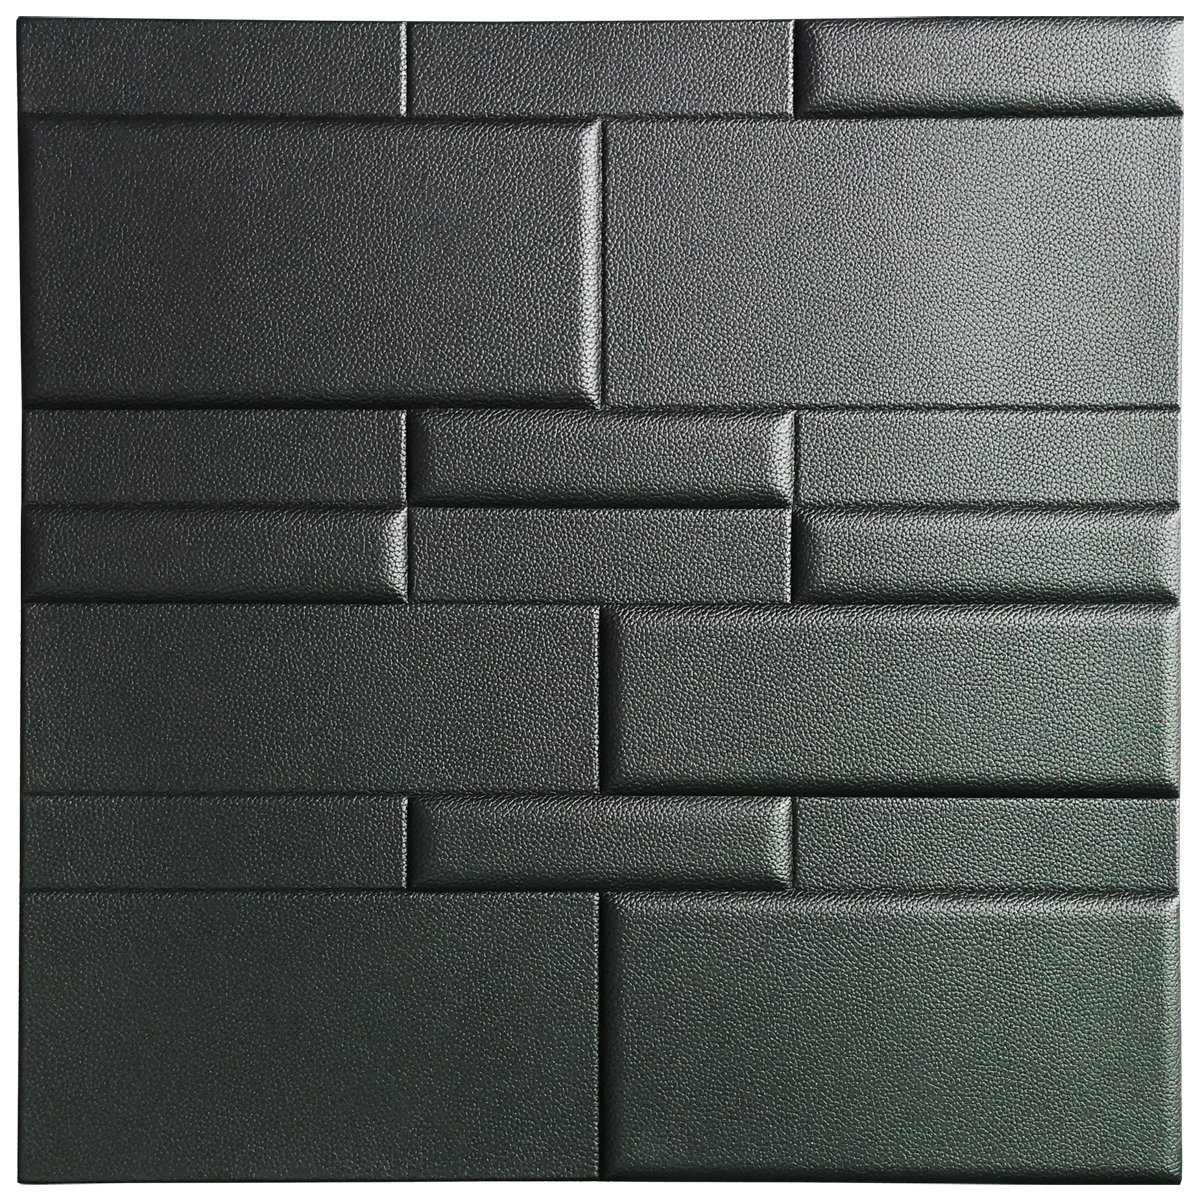 Art3d 3D Leather Tiles Decoartive 3D Wall Panels, Black Brick 24 x 24 (6 Pack) A12033P6